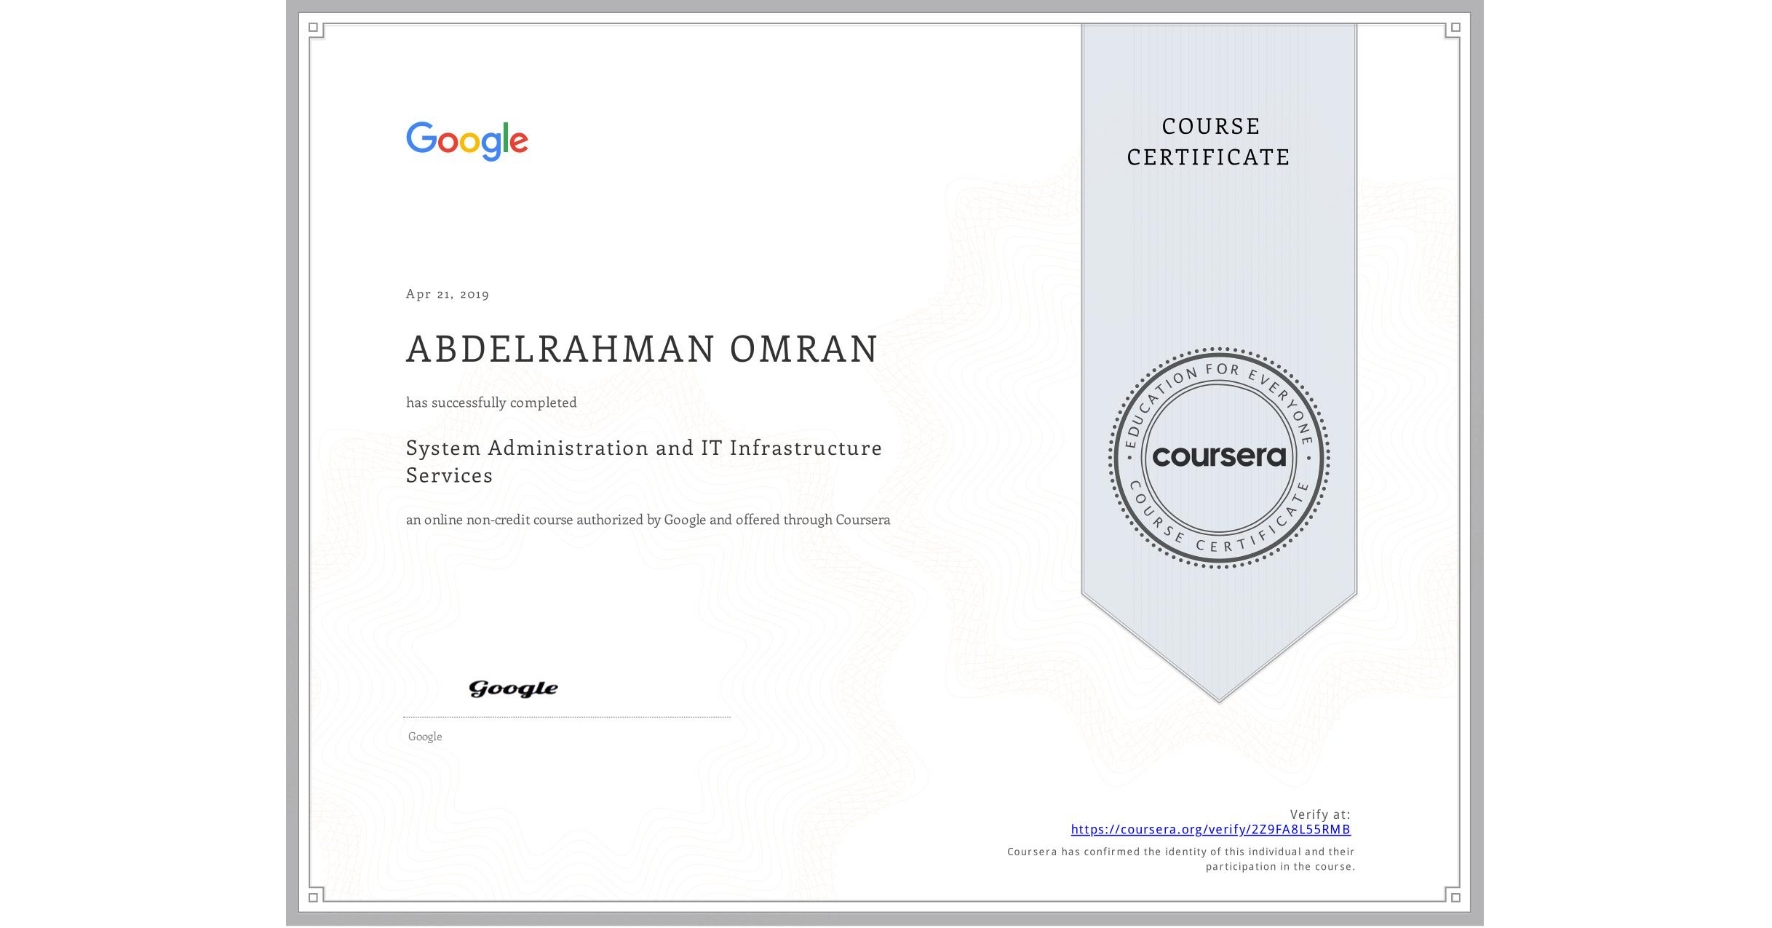 View certificate for ABDELRAHMAN OMRAN,  System Administration and IT Infrastructure Services, an online non-credit course authorized by Google and offered through Coursera